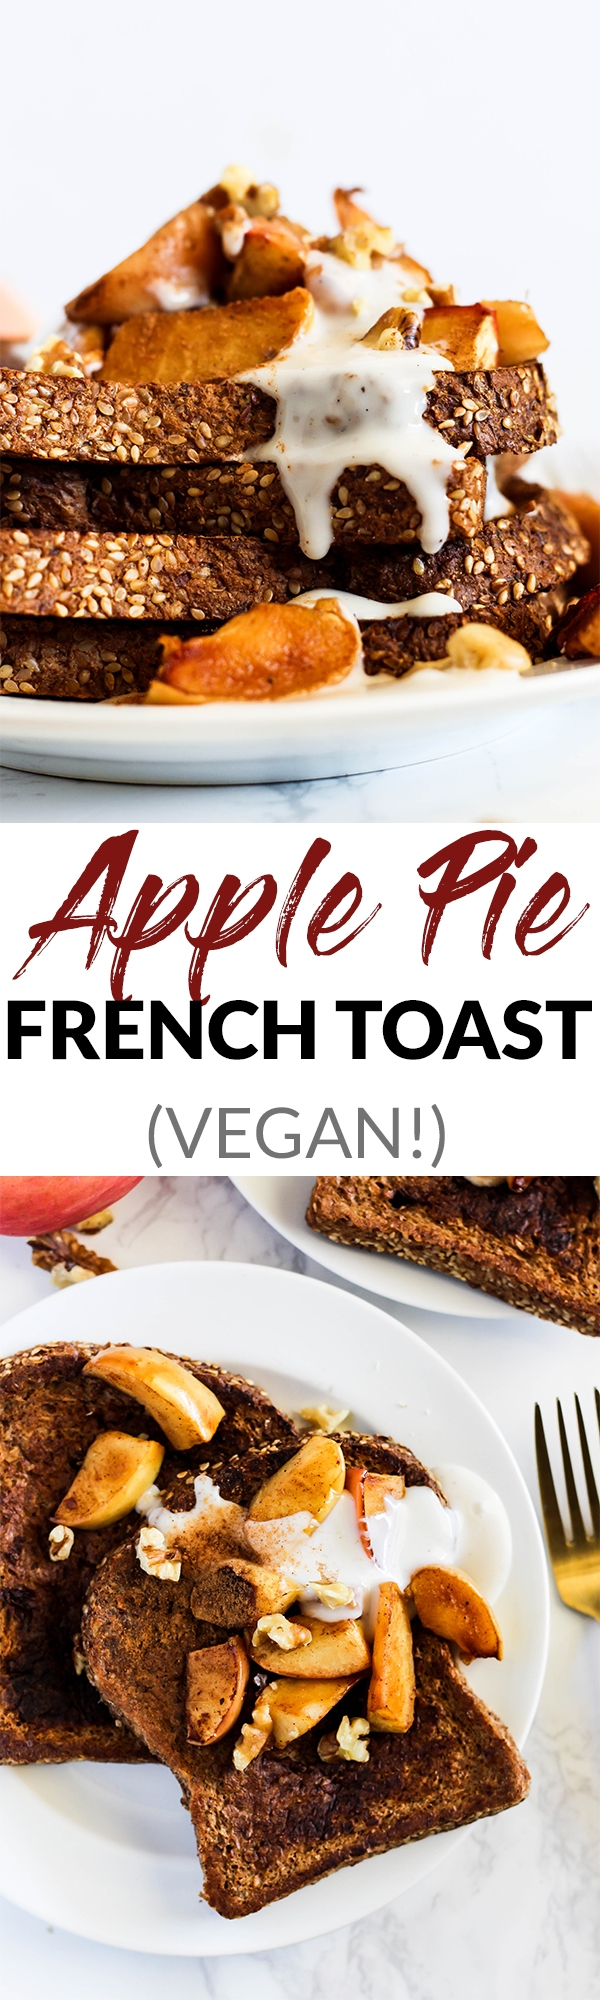 Make breakfast the most satisfying meal of the day with some Apple Pie Vegan French Toast! Simple to make, wholesome, and absolutely delicious.